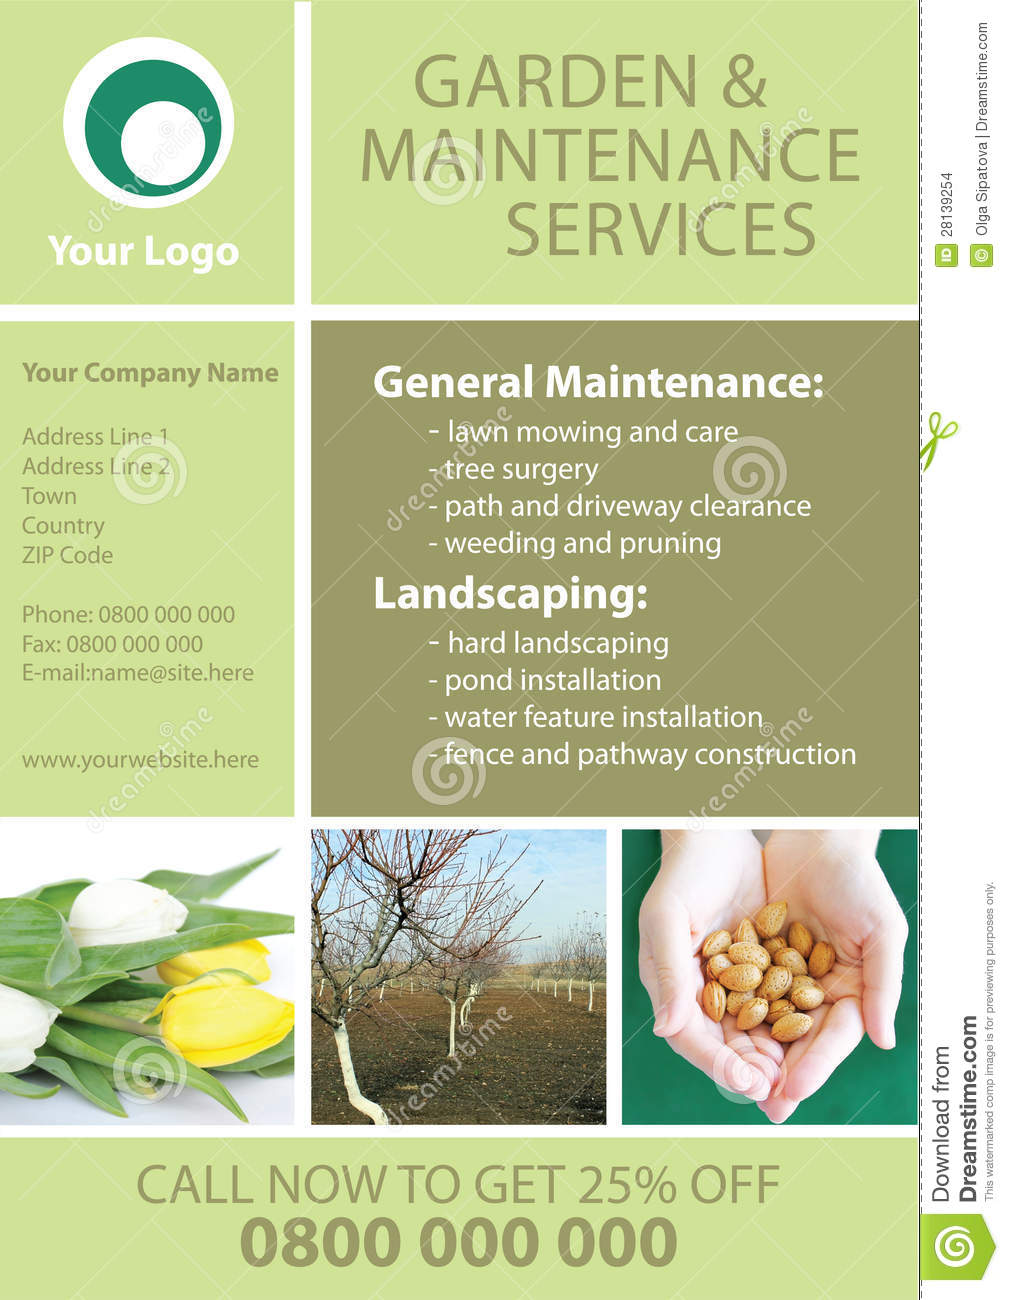 garden and maintenance flyer template stock images image 28139254 garden and maintenance flyer template